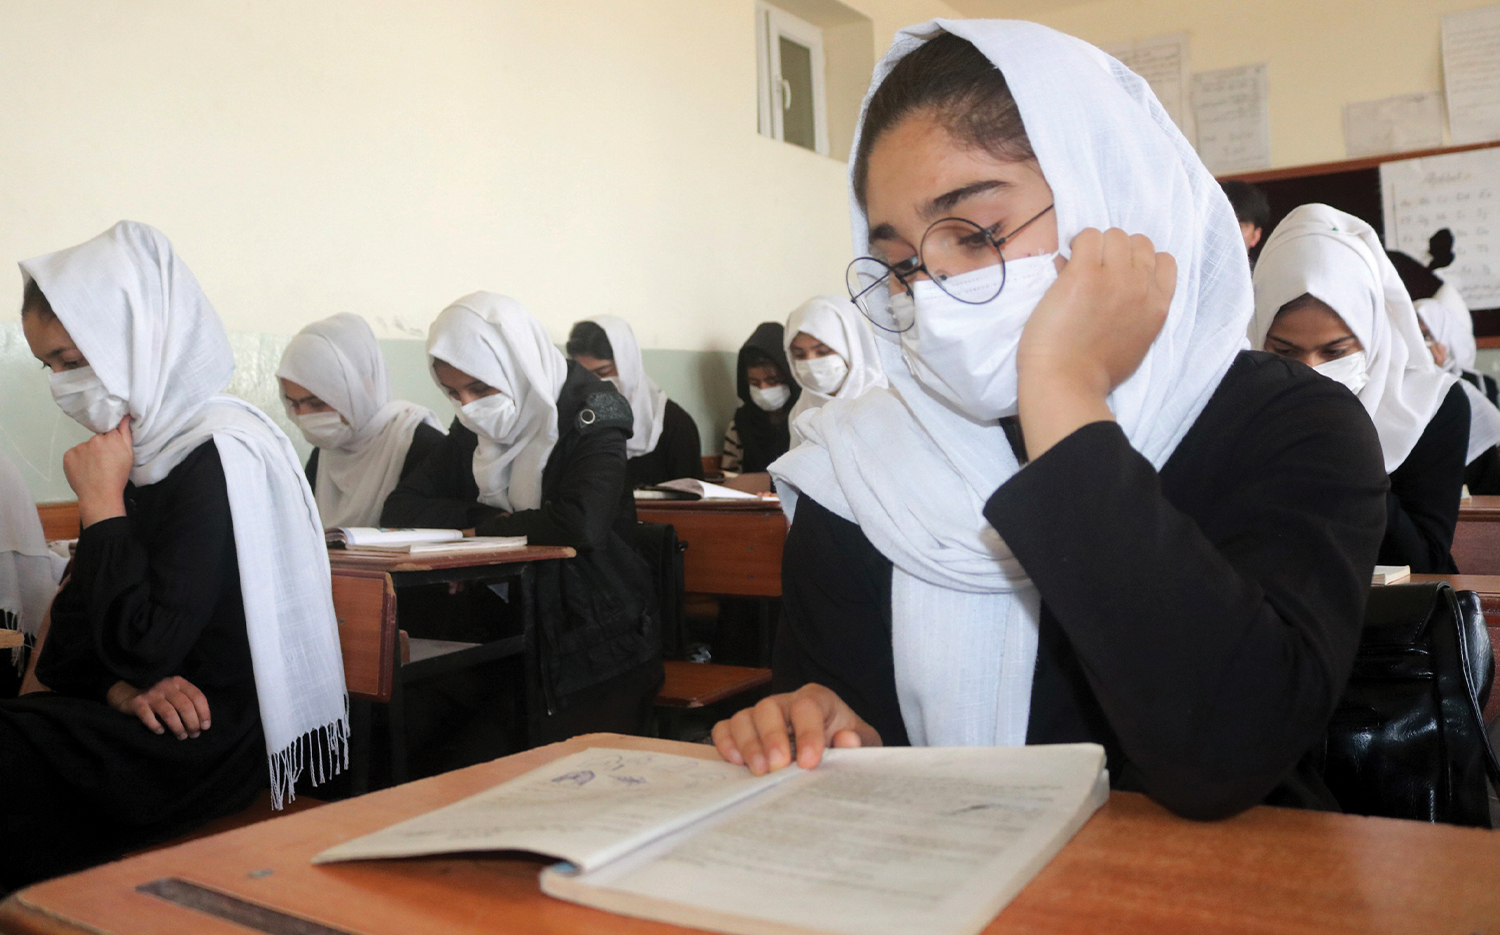 Students attend a class at a school in northern Afghanistan.